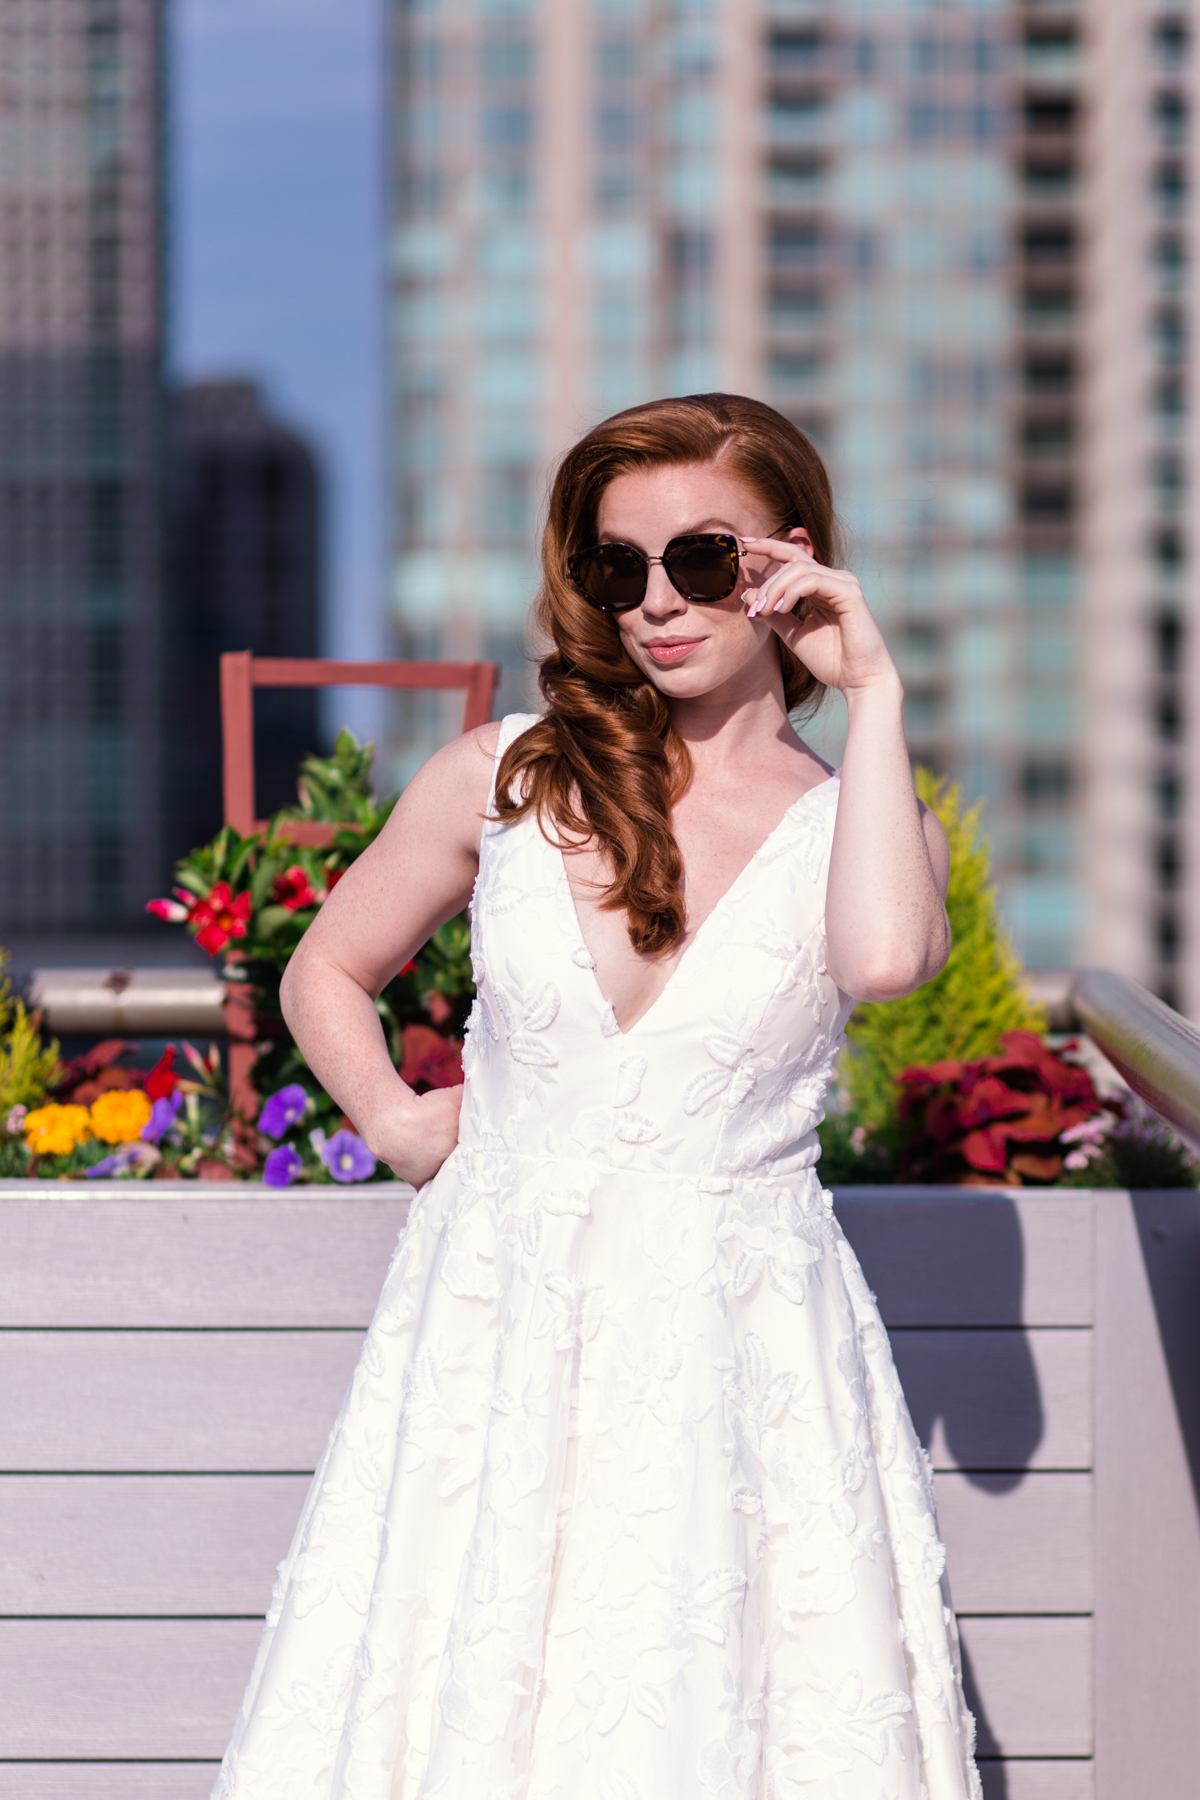 Rooftop-bridal-shoot-by-Emma-Mullins-Photography-8